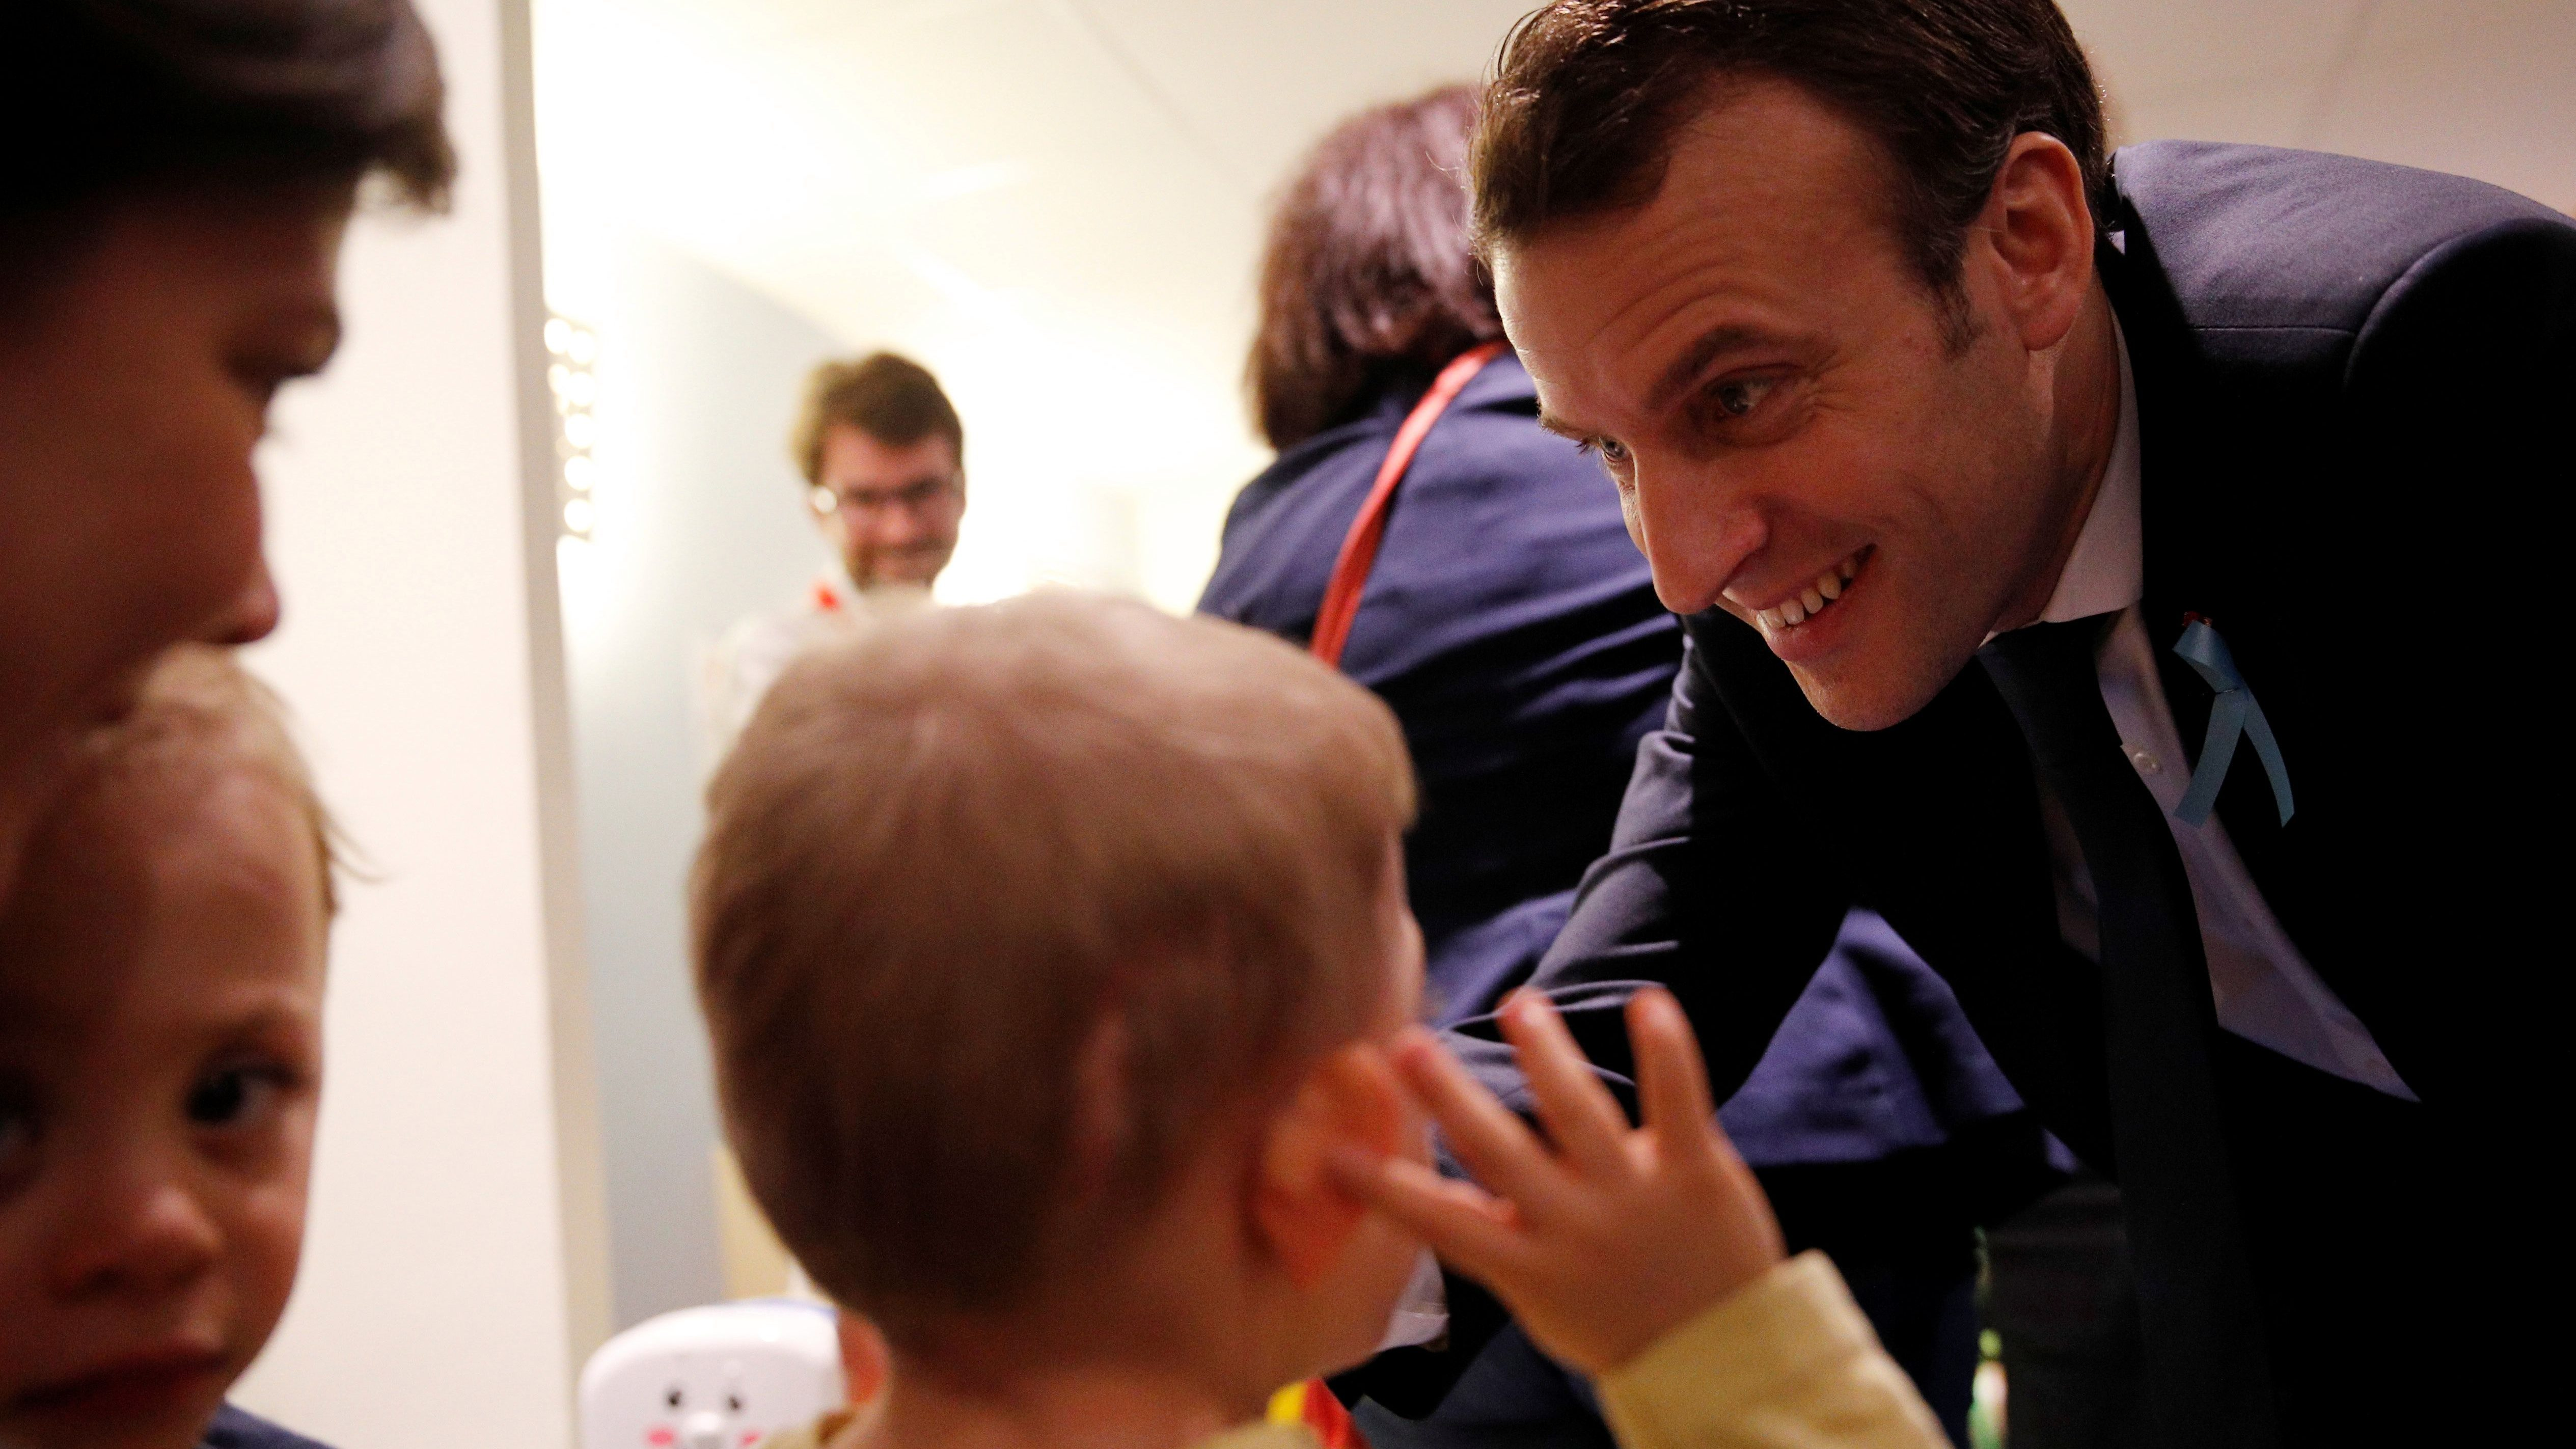 French President Emmanuel Macron smiles to a child during a visit to unveil an autism plan at the Rouen hospital, France, April 5, 2018.